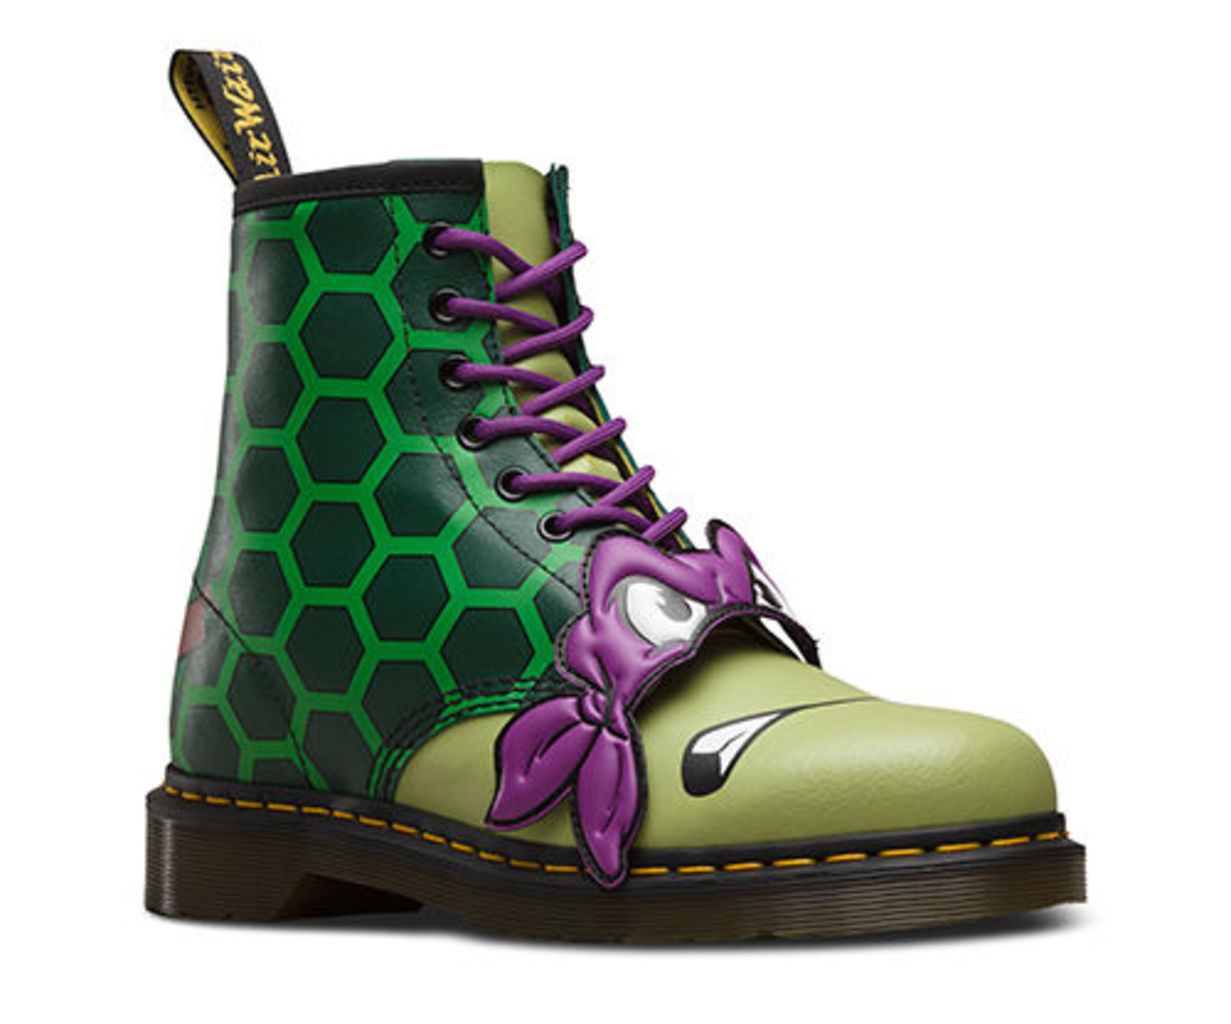 Donnie TMNT Boot